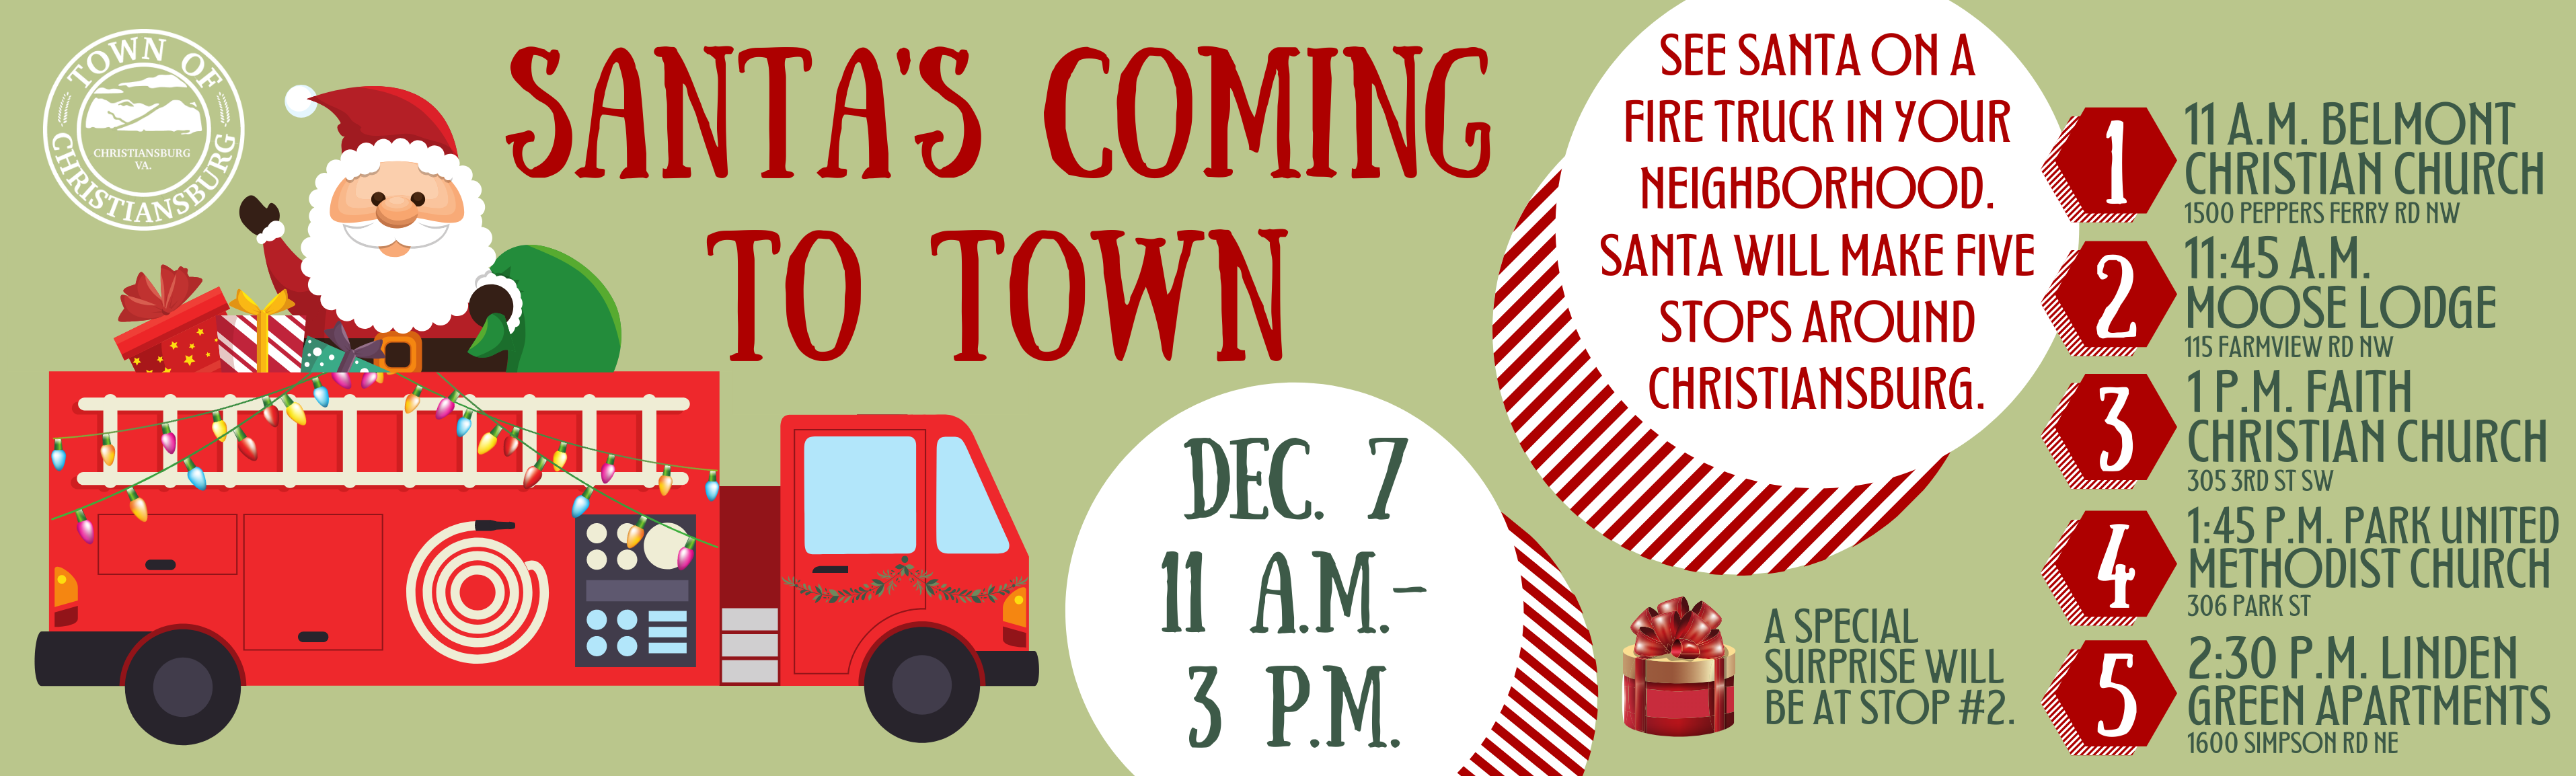 Santa's Coming to Town Dec. 7 from 11 a.m.-3 p.m. Santa will make 5 stops around Christiansburg t